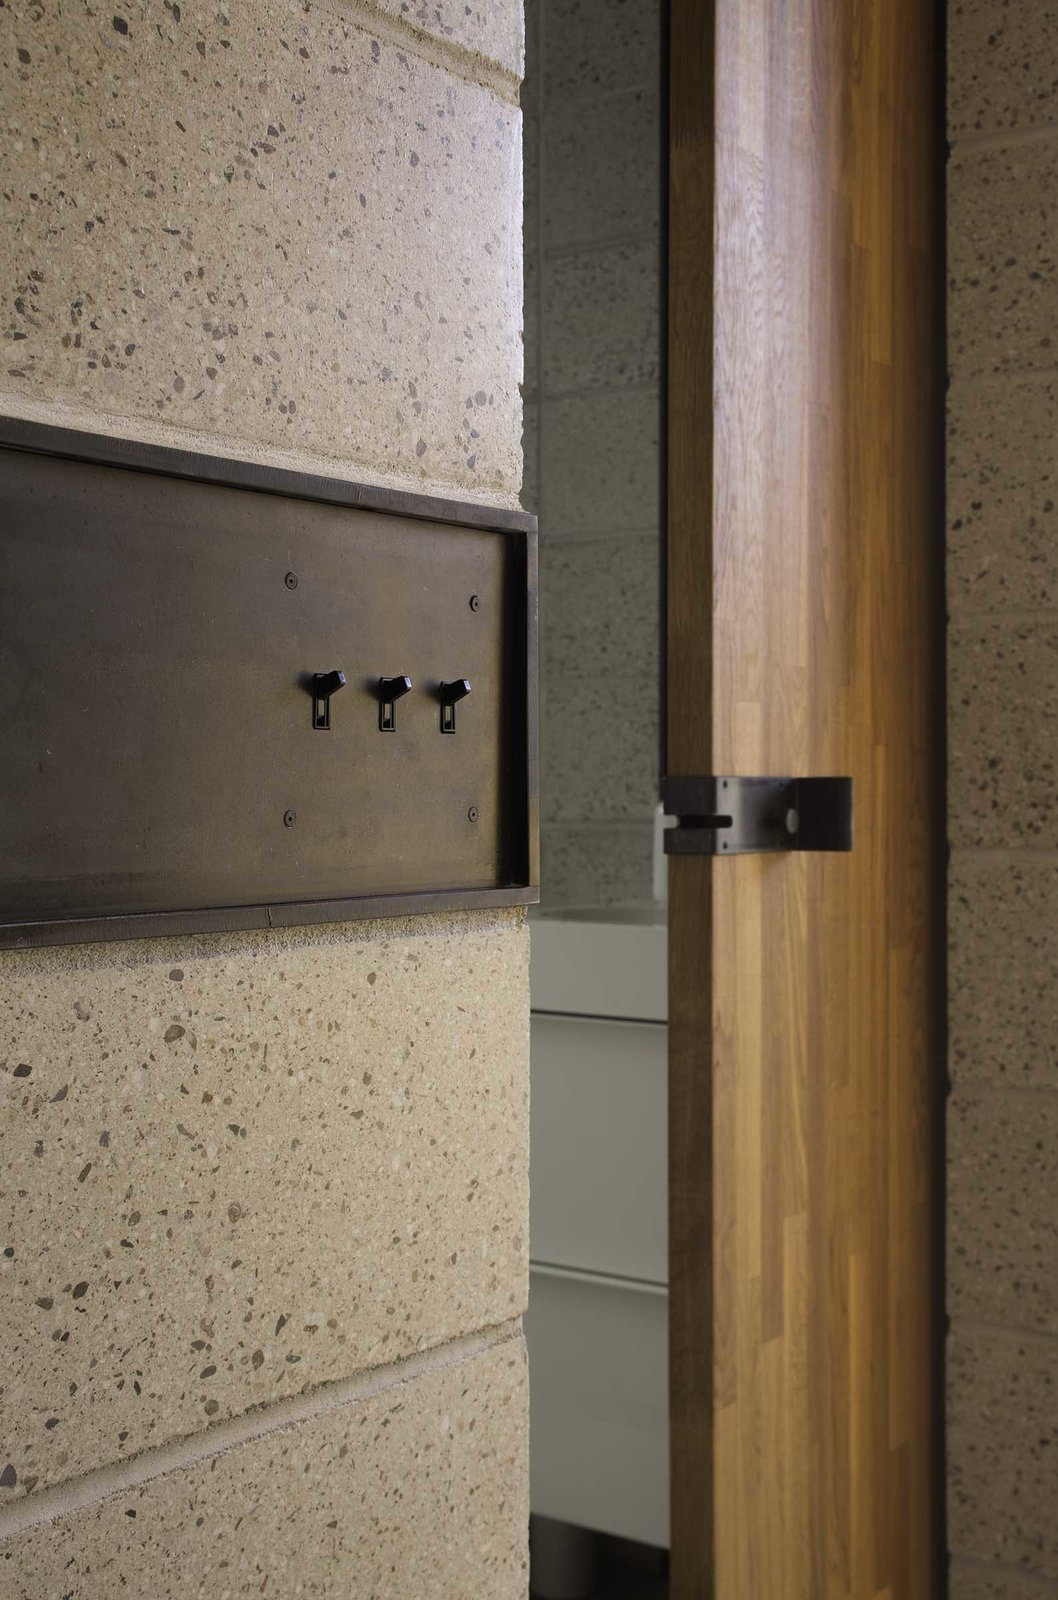 Hall paid special attention to details like custom light switches and door latches, since they tend to stand out more in small spaces.  Photo 6 of 8 in 8 Creative Ways to Let the Little Details Shine from Micro Dwellings in Phoenix Get Creative With Under 500 Square Feet